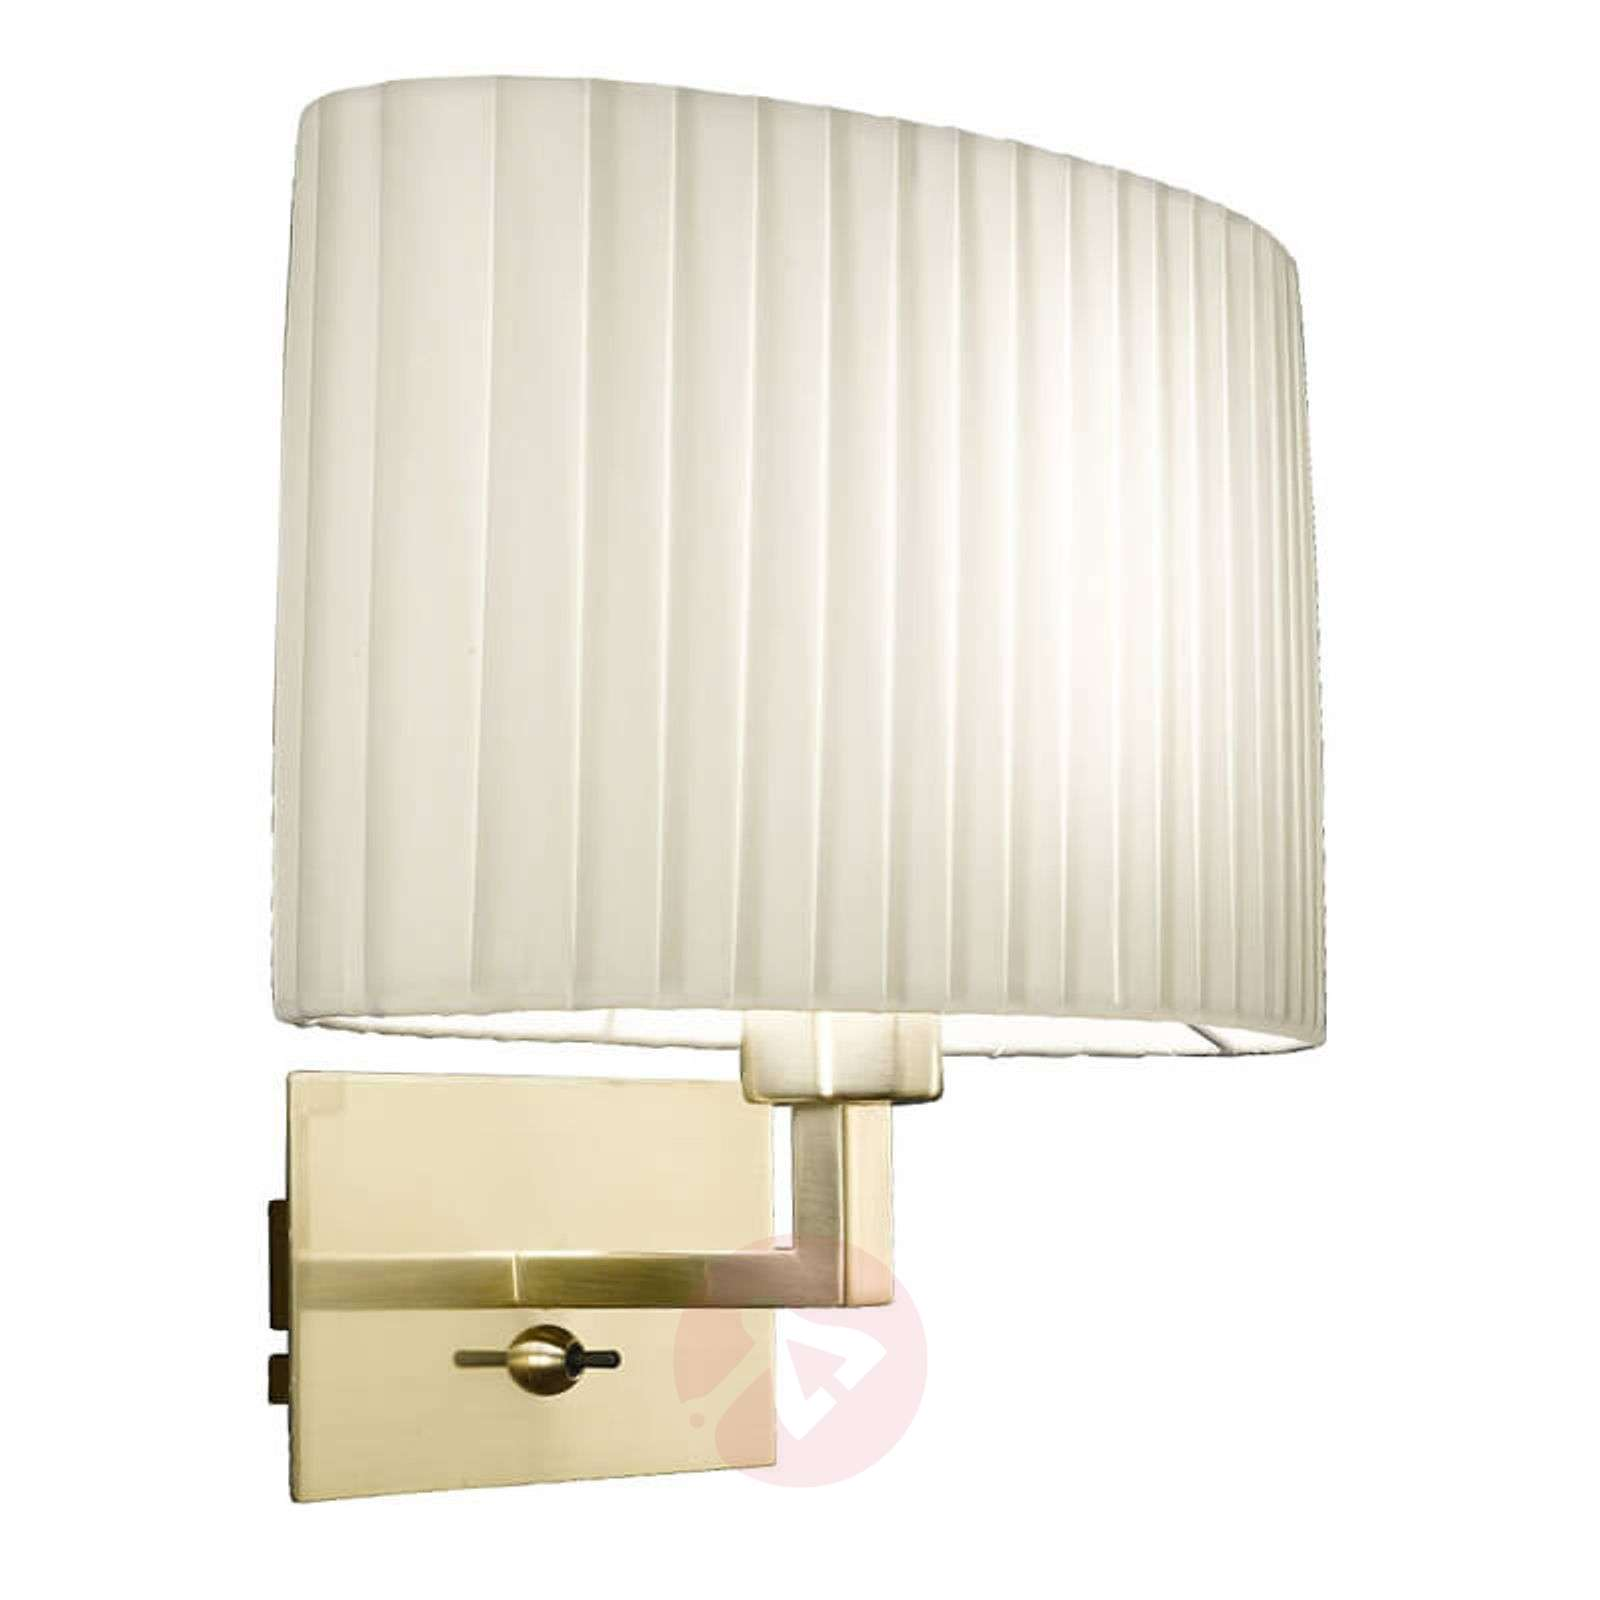 Pleated Fabric Wall Light Sand With Brass Holder Lights